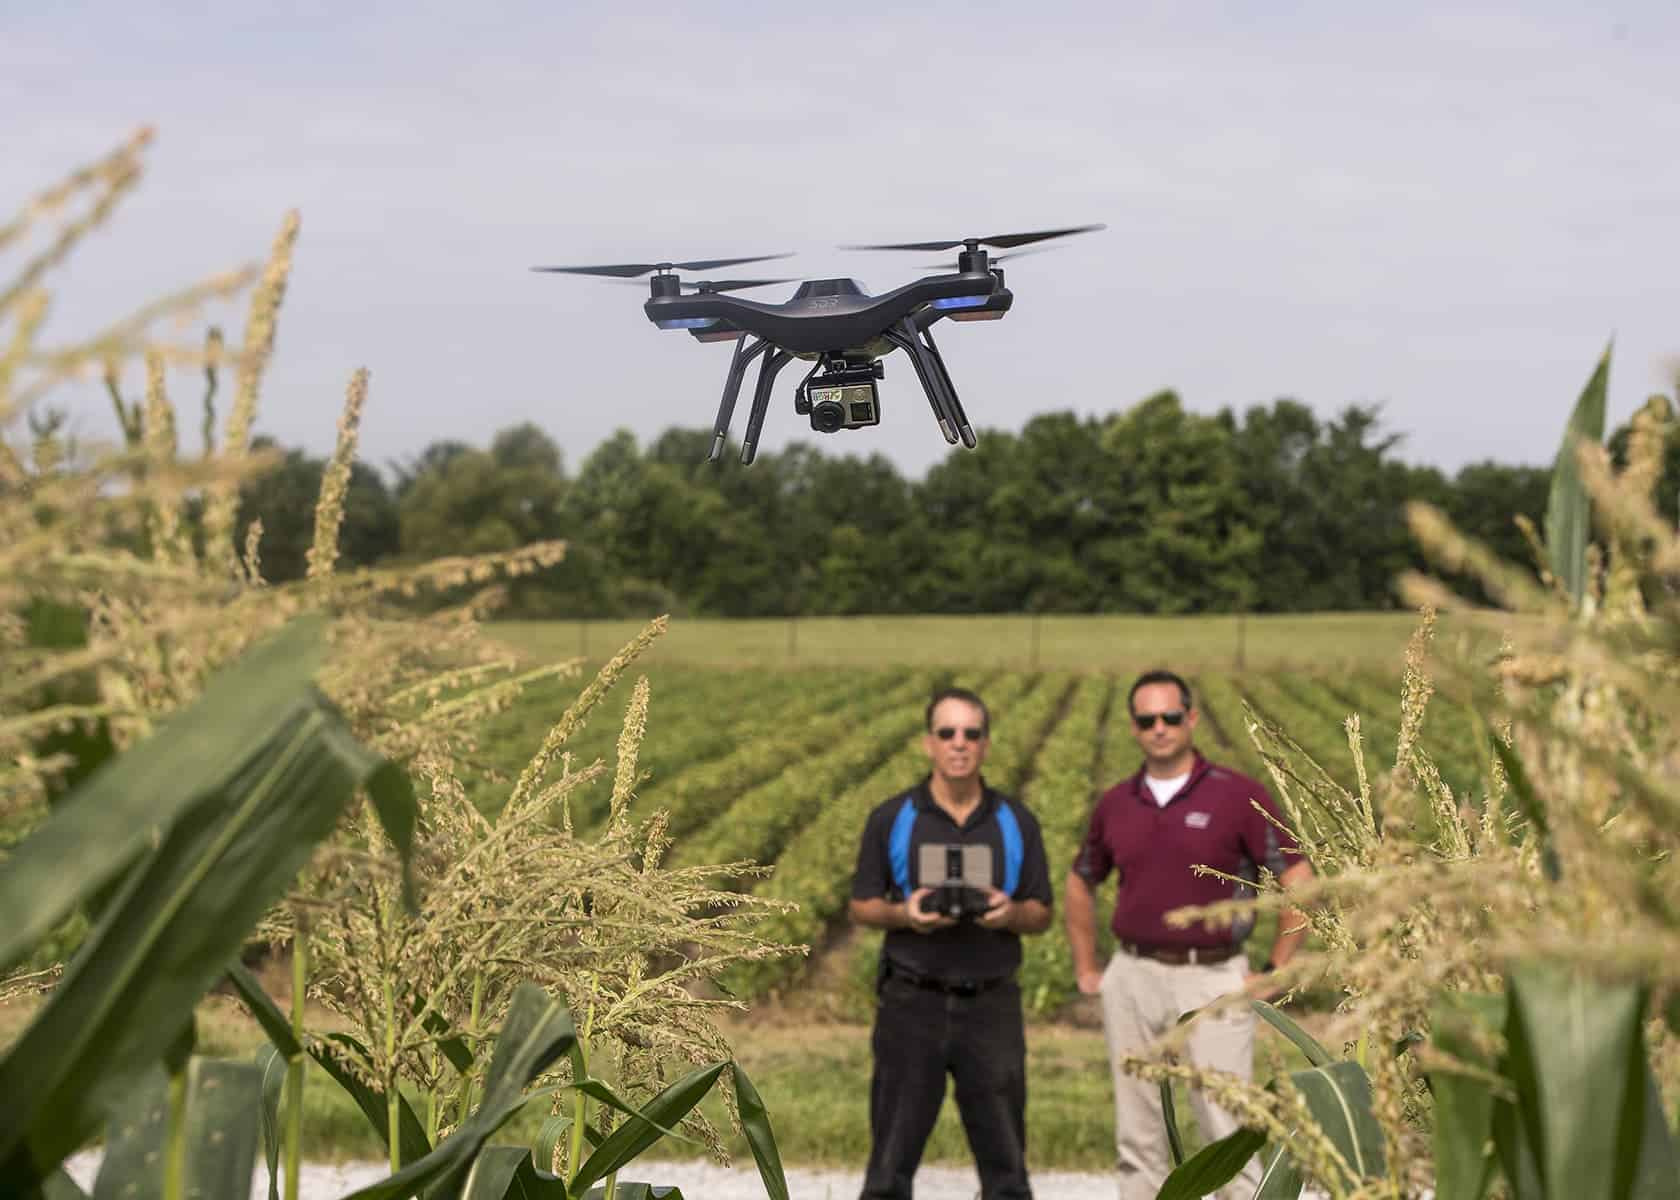 Two faculty members in the Department of Agricultural Systems and Education at Southern Illinois University Carbondale, test fly  a drone in a corn field. Photo by Russell Bailey